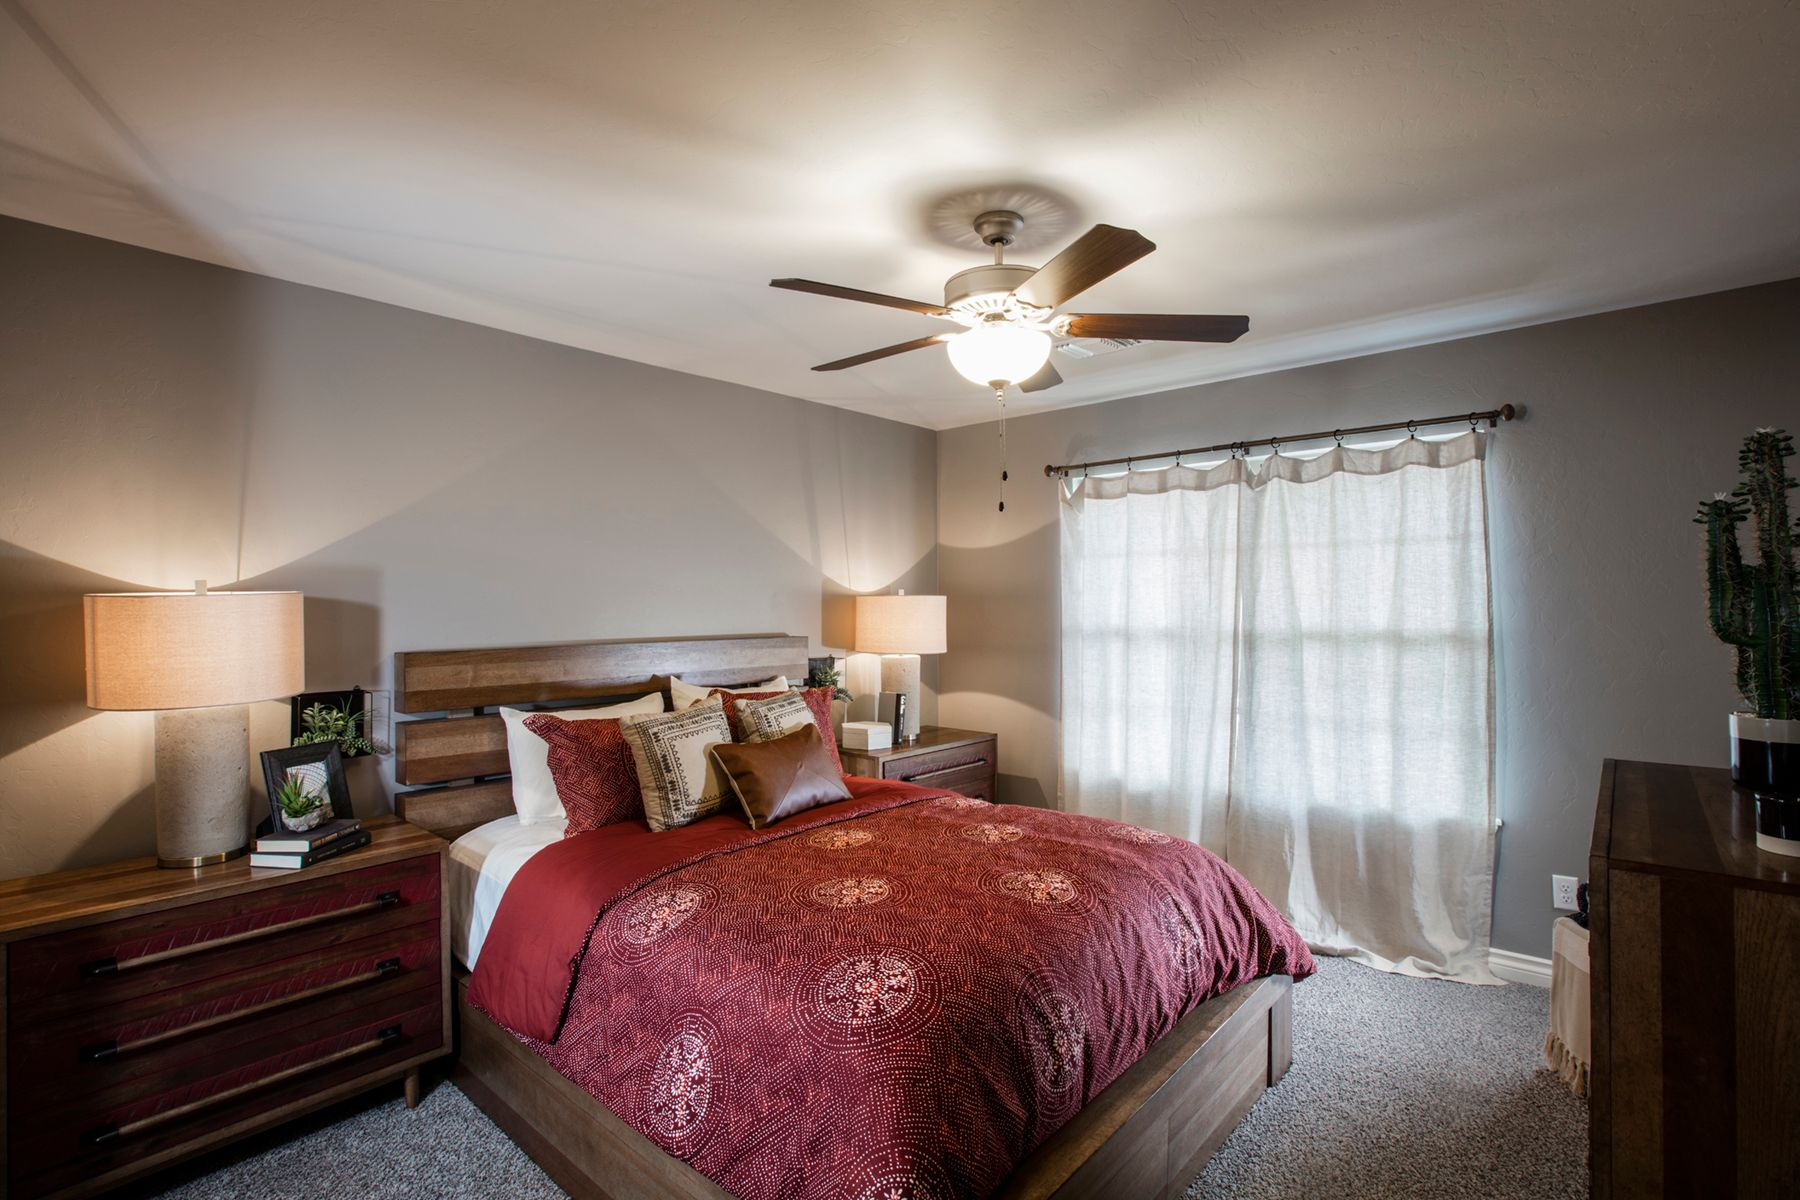 Bedroom featured in the Frederickson By Ideal Homes in Oklahoma City, OK